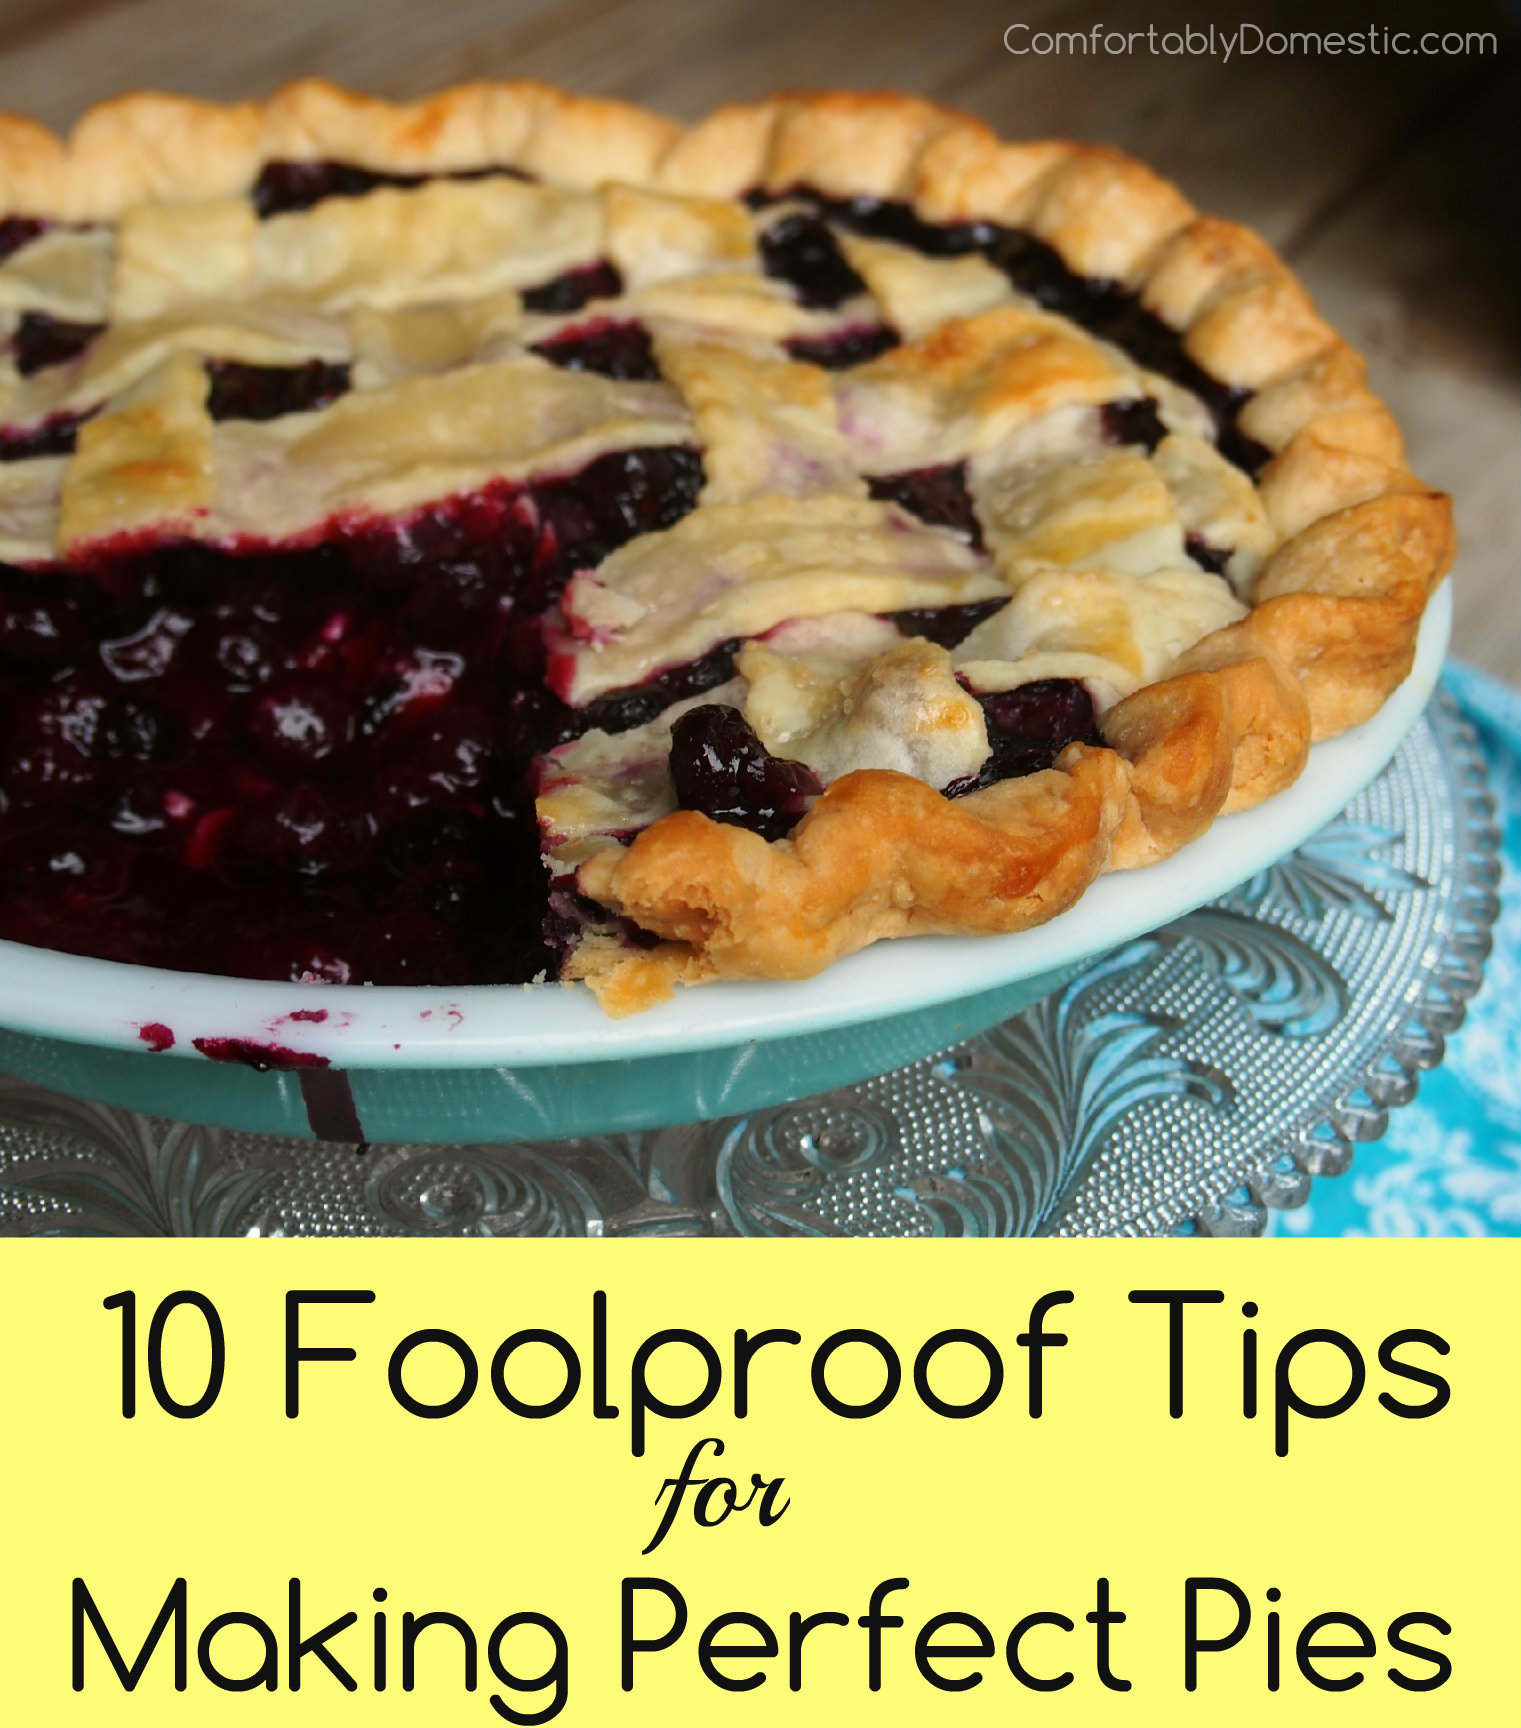 10 foolproof pie-making tips are here for your pie baking success, from a girl who's ruined her share of pies.  | ComfortablyDomestic.com